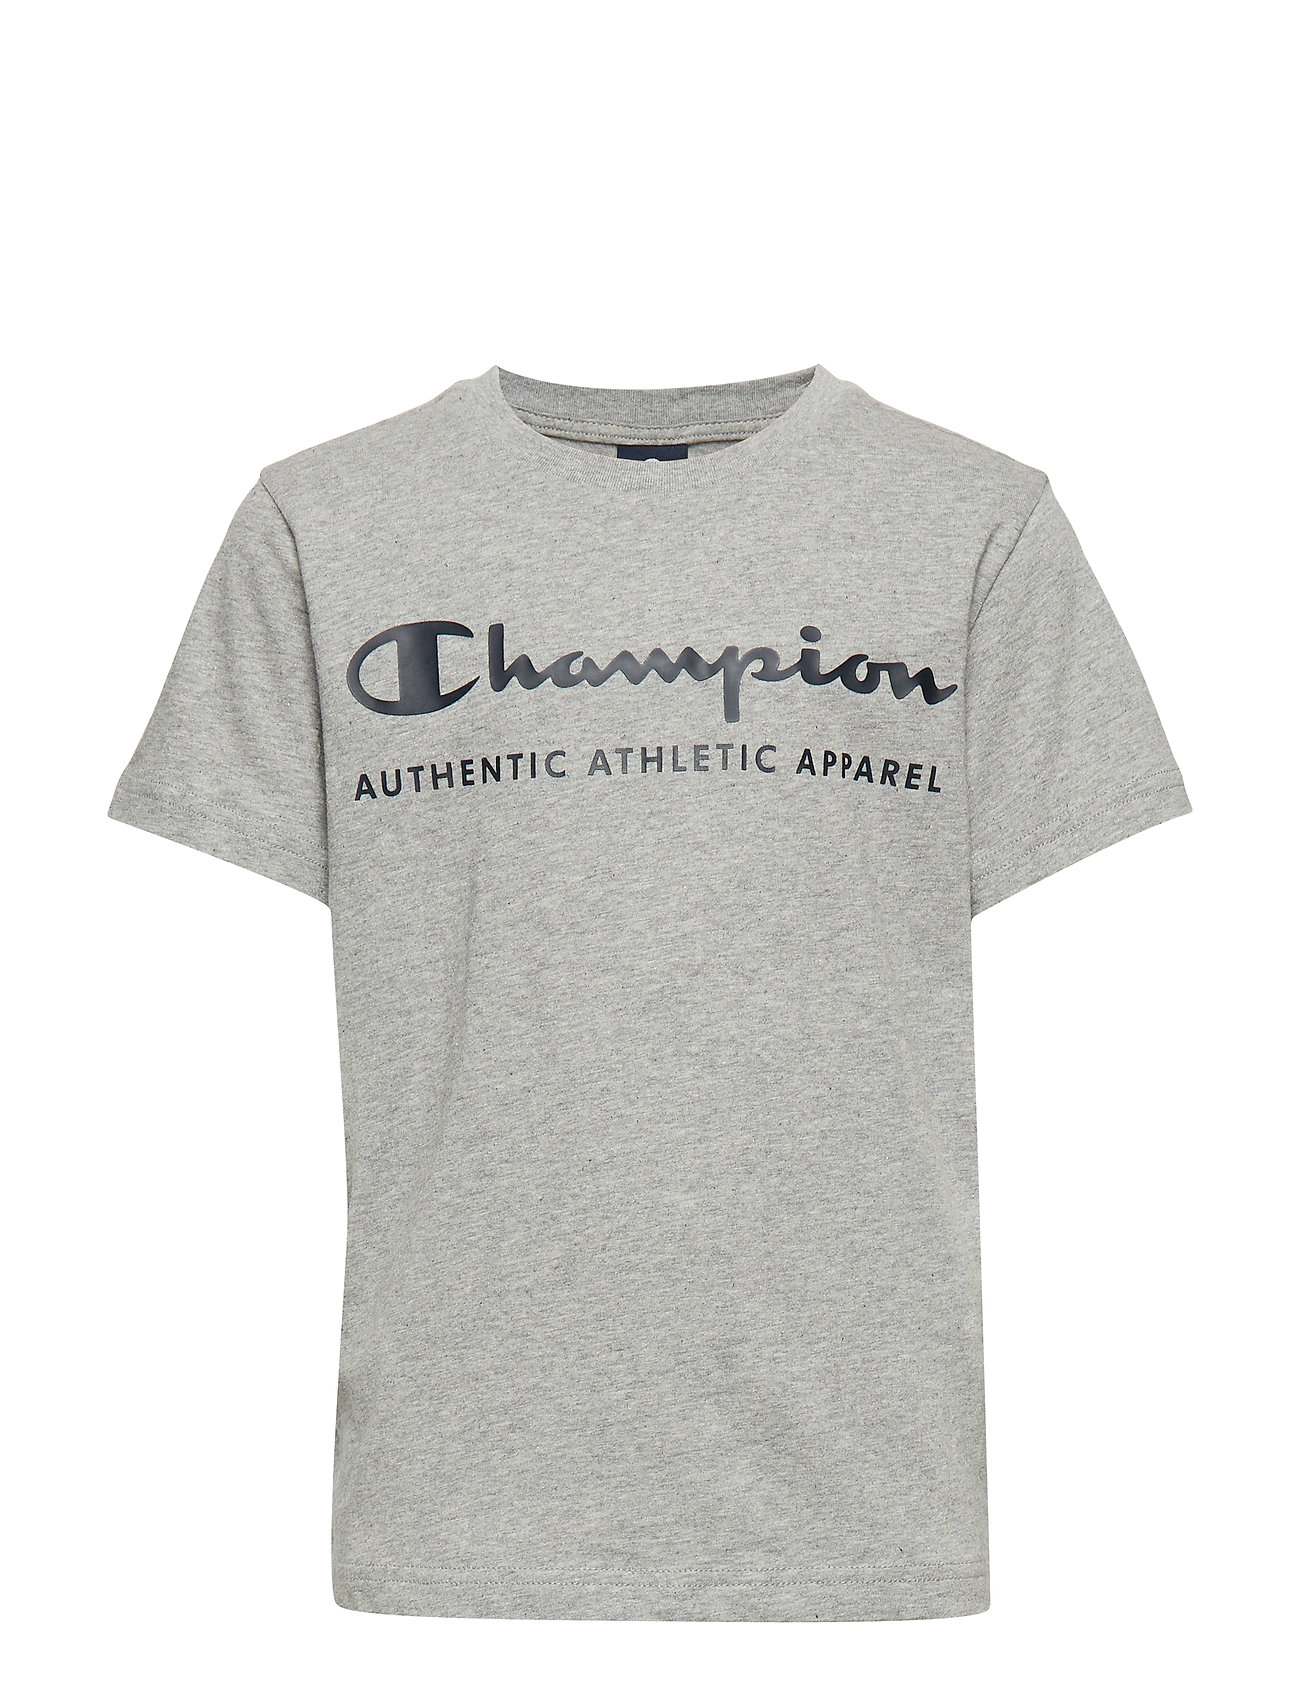 Champion Crewneck T-Shirt - GRAY MELANGE LIGHT